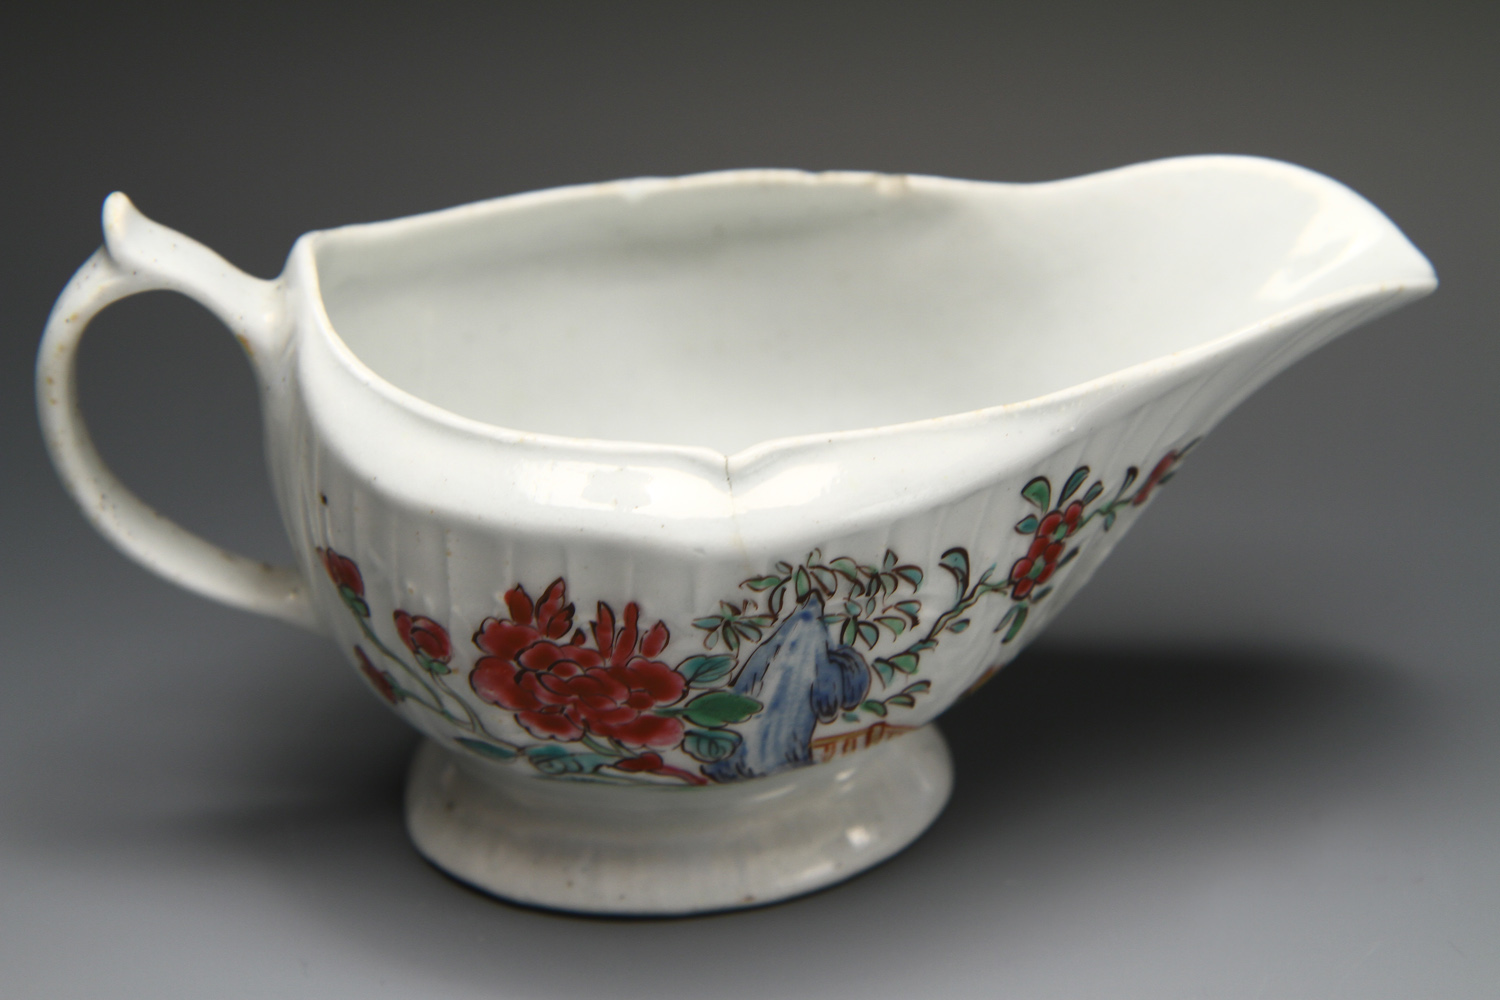 1084 -  A rare Christian Liverpool sauceboat with polychrome decoration c 1770.